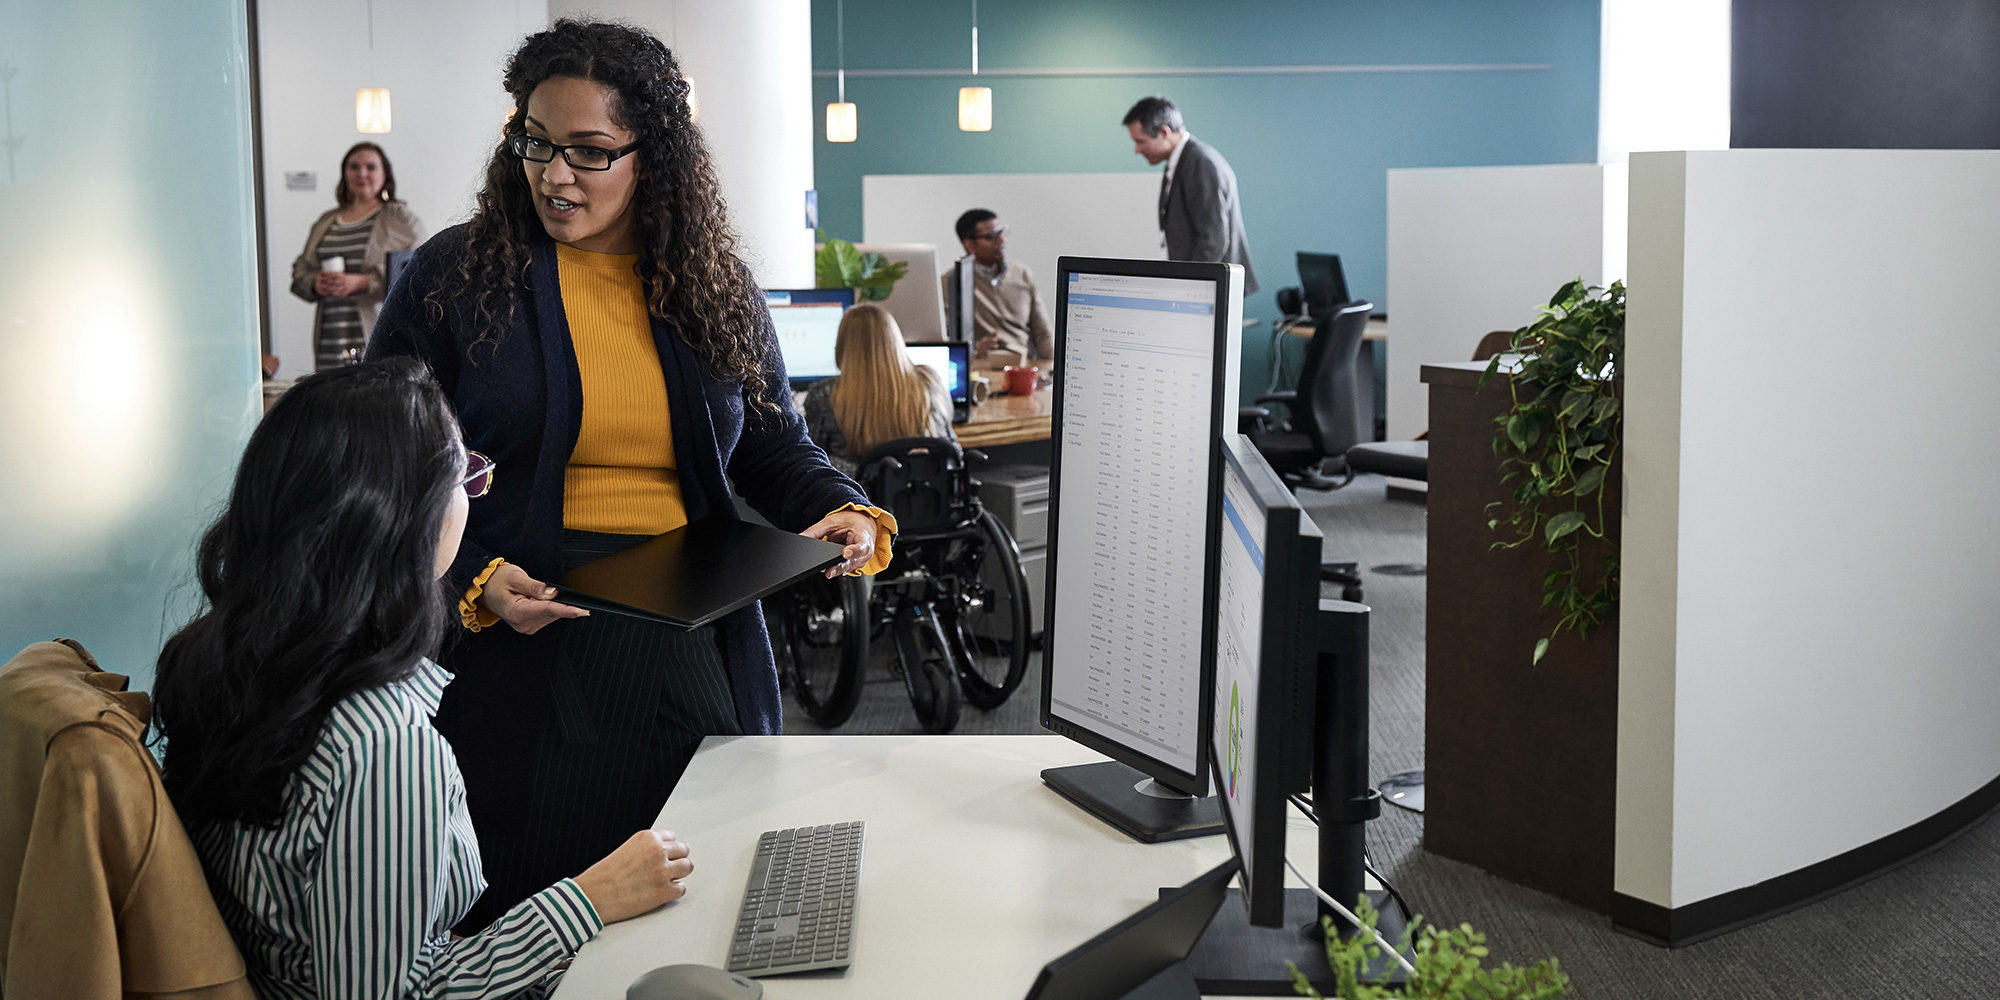 Two people sitting and standing in front of a computer